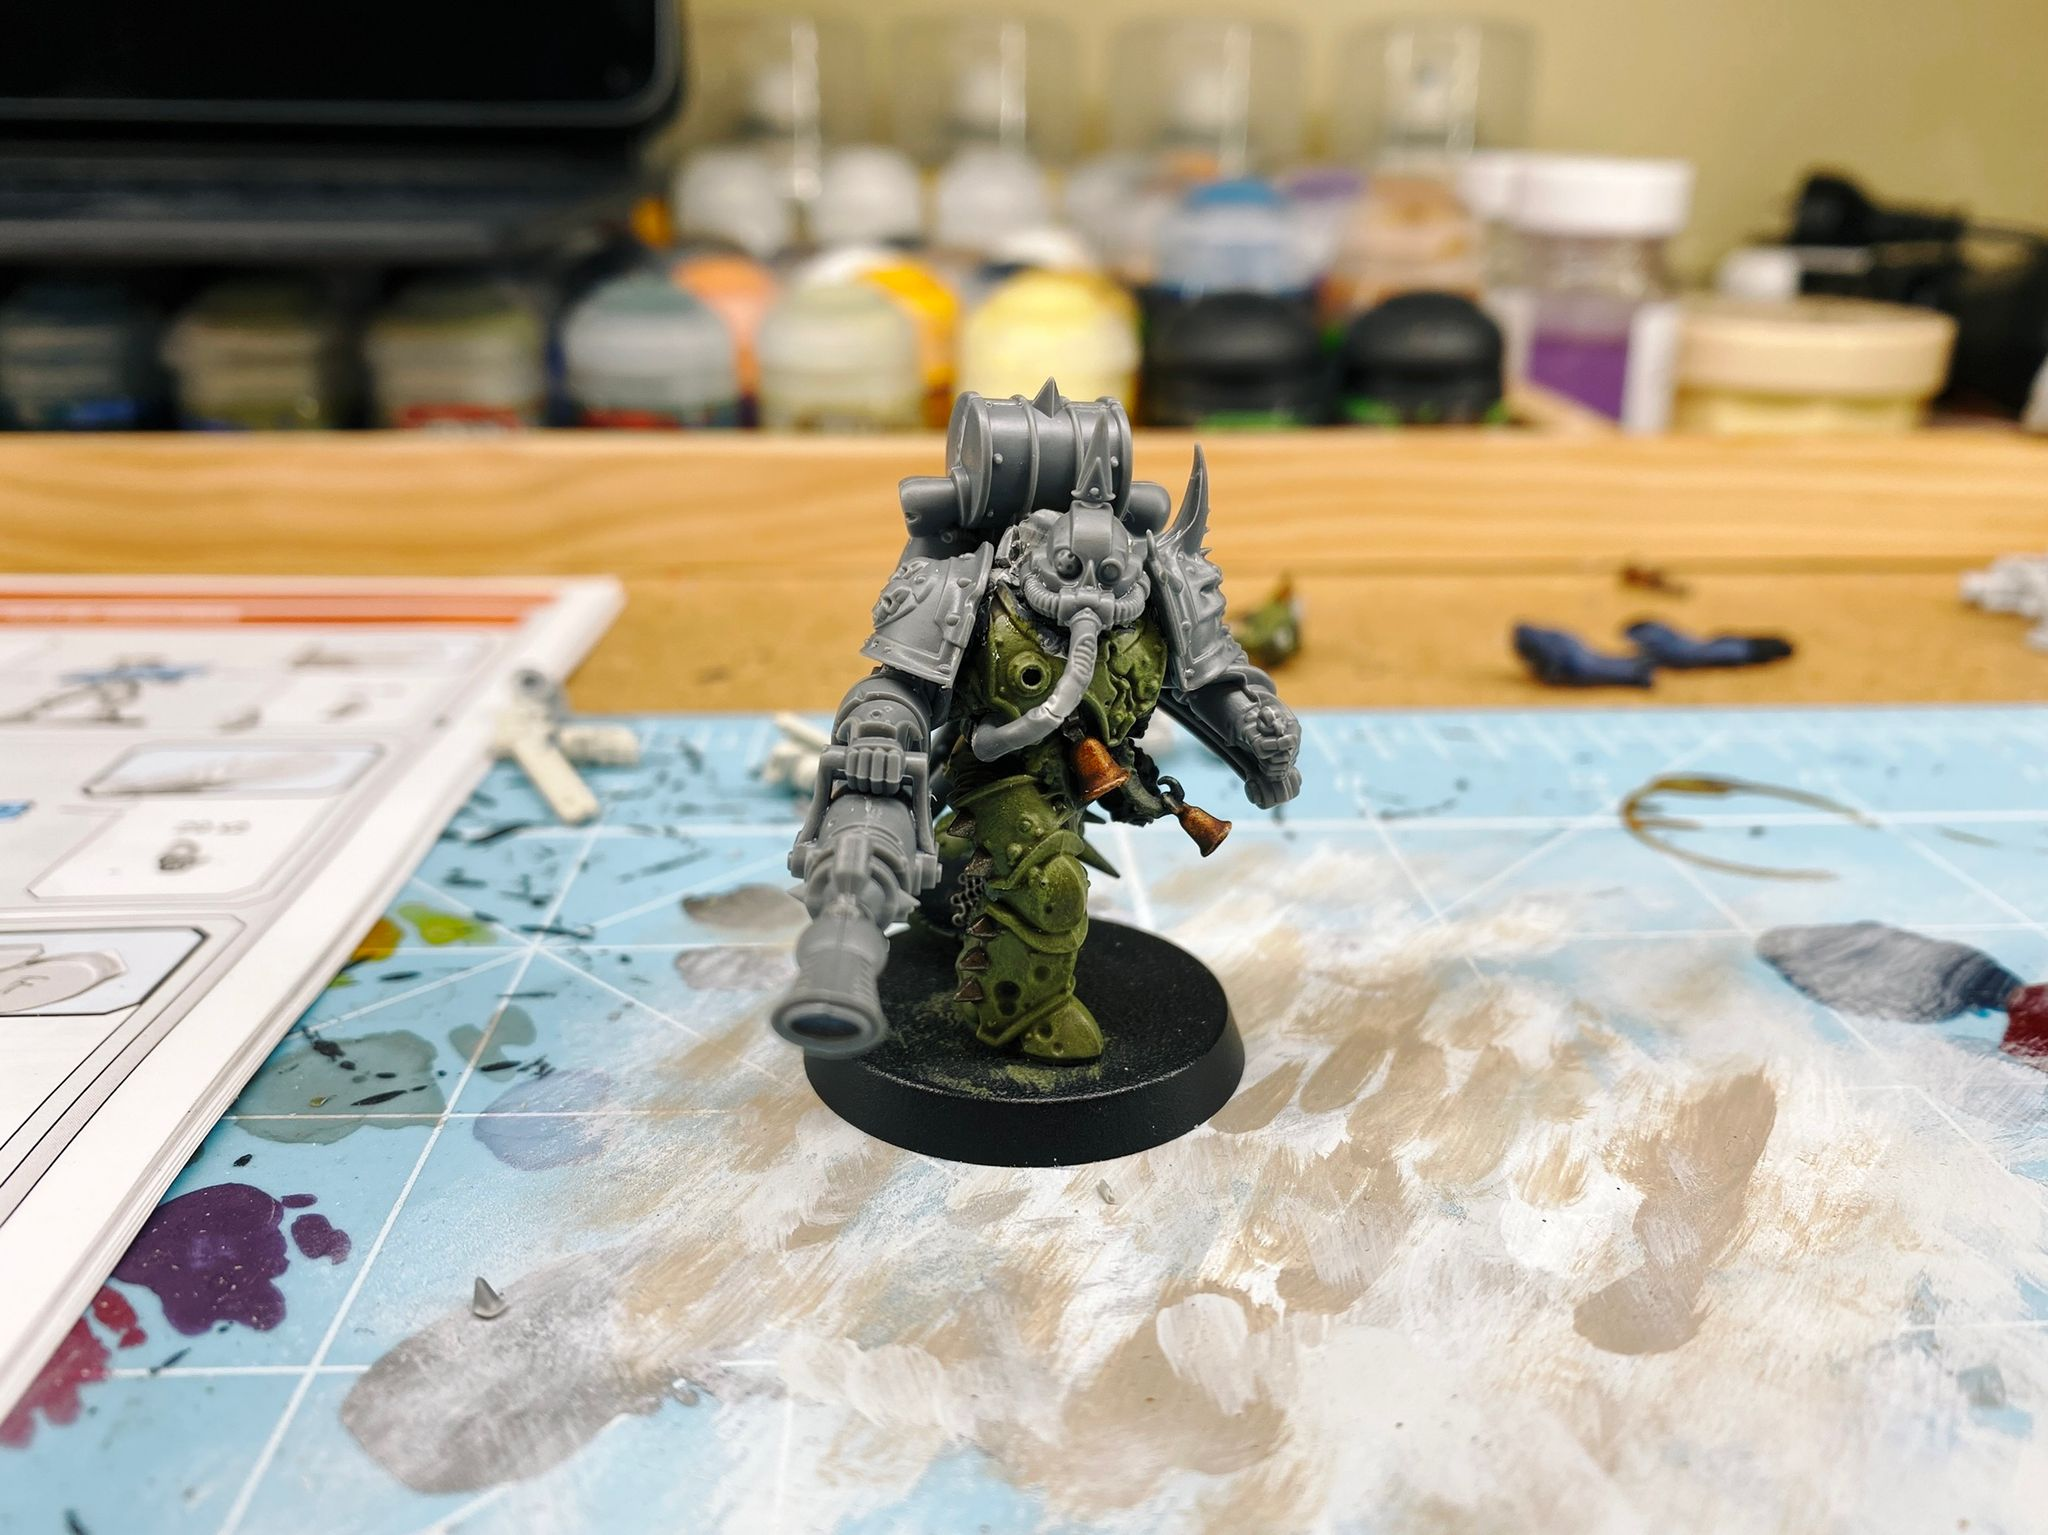 A photo of a Warhammer 40,000 Plague Marine, he has pock-marked heavy armour and spikes all over. He's in mid-stride and is holding a very large flamethrower-looking thing. His head, backpack, and both arms are unpainted bare plastic and are the new parts I added.